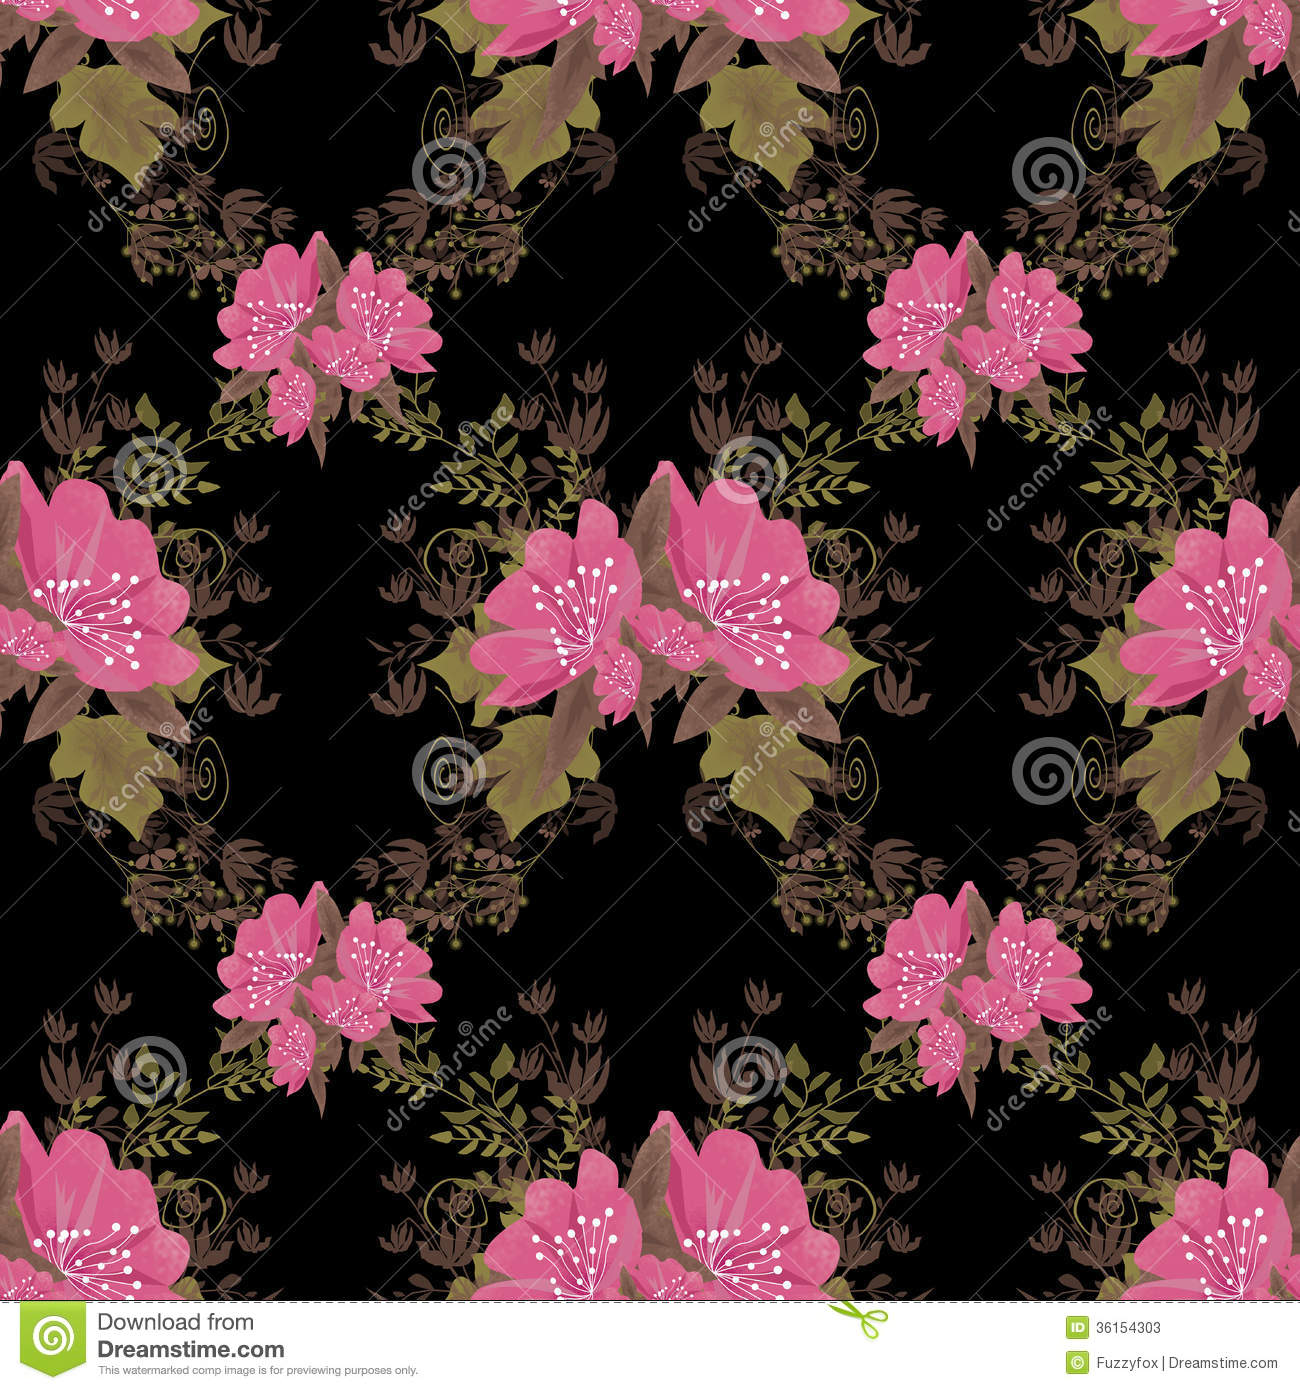 Black And White Flowers Wallpapers Hd: Black And Pink Flower Wallpaper